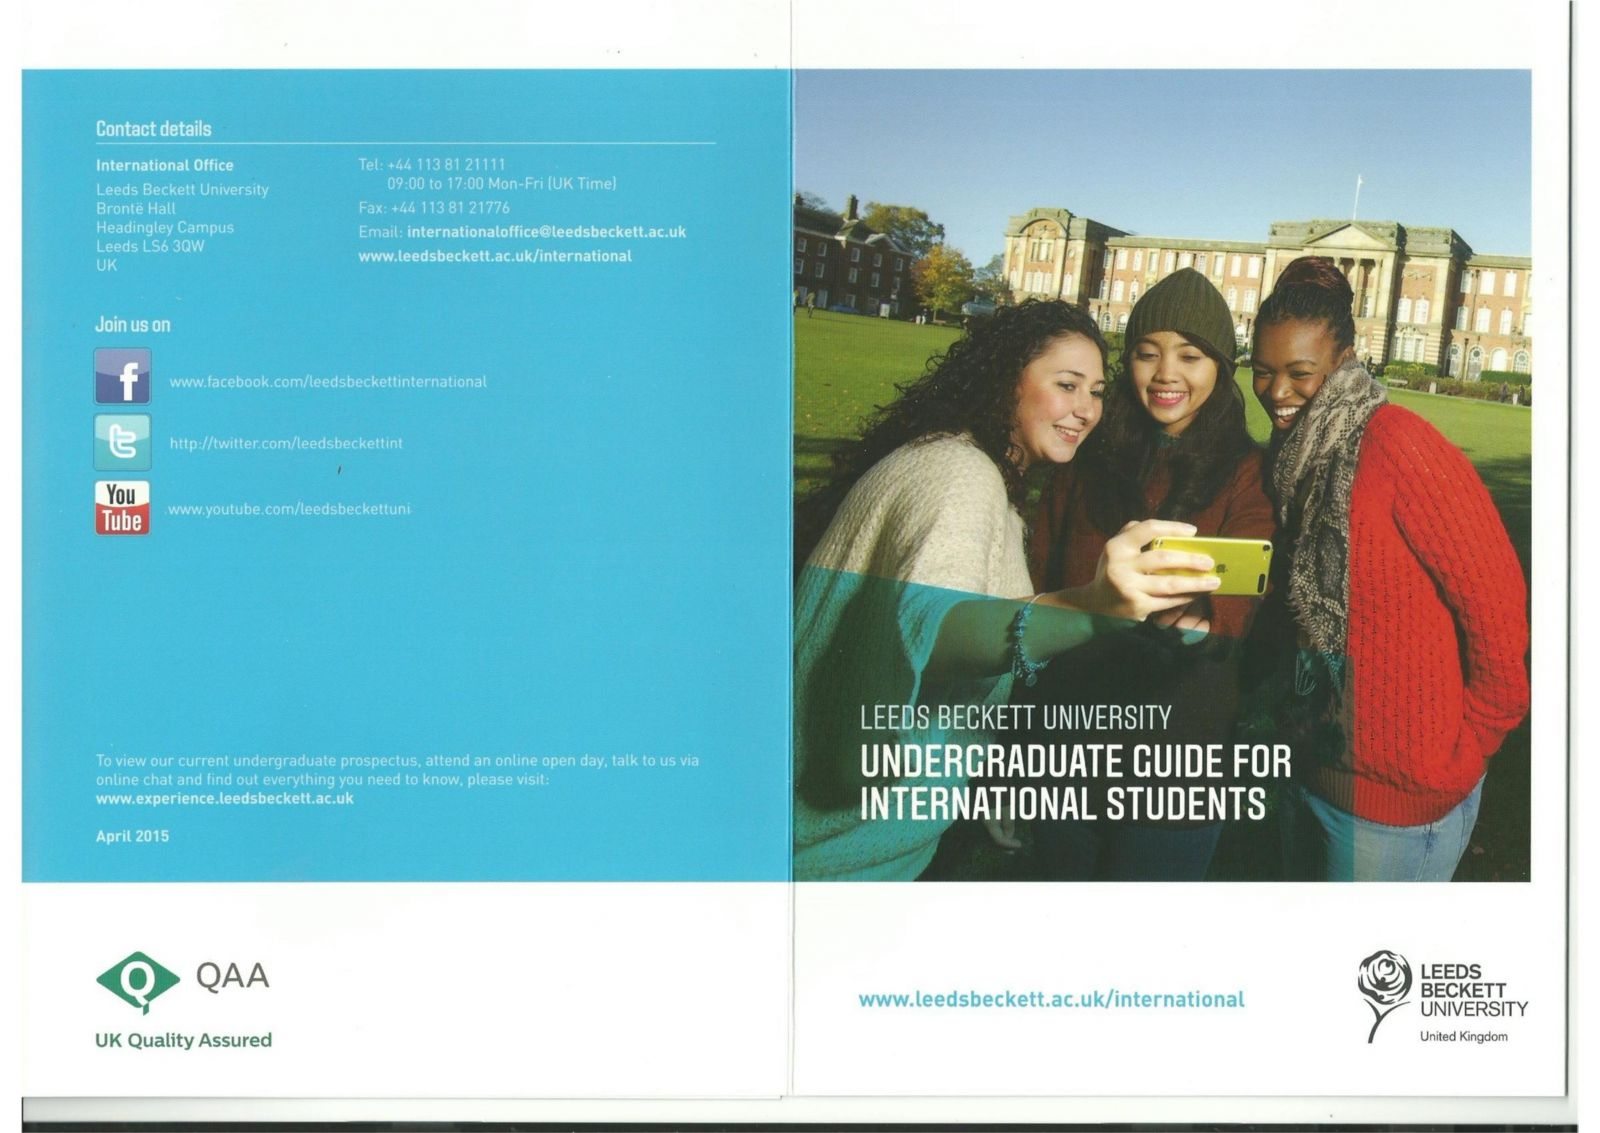 Undergraduate Guide for International Students at Leeds Beckett University, England 2016.